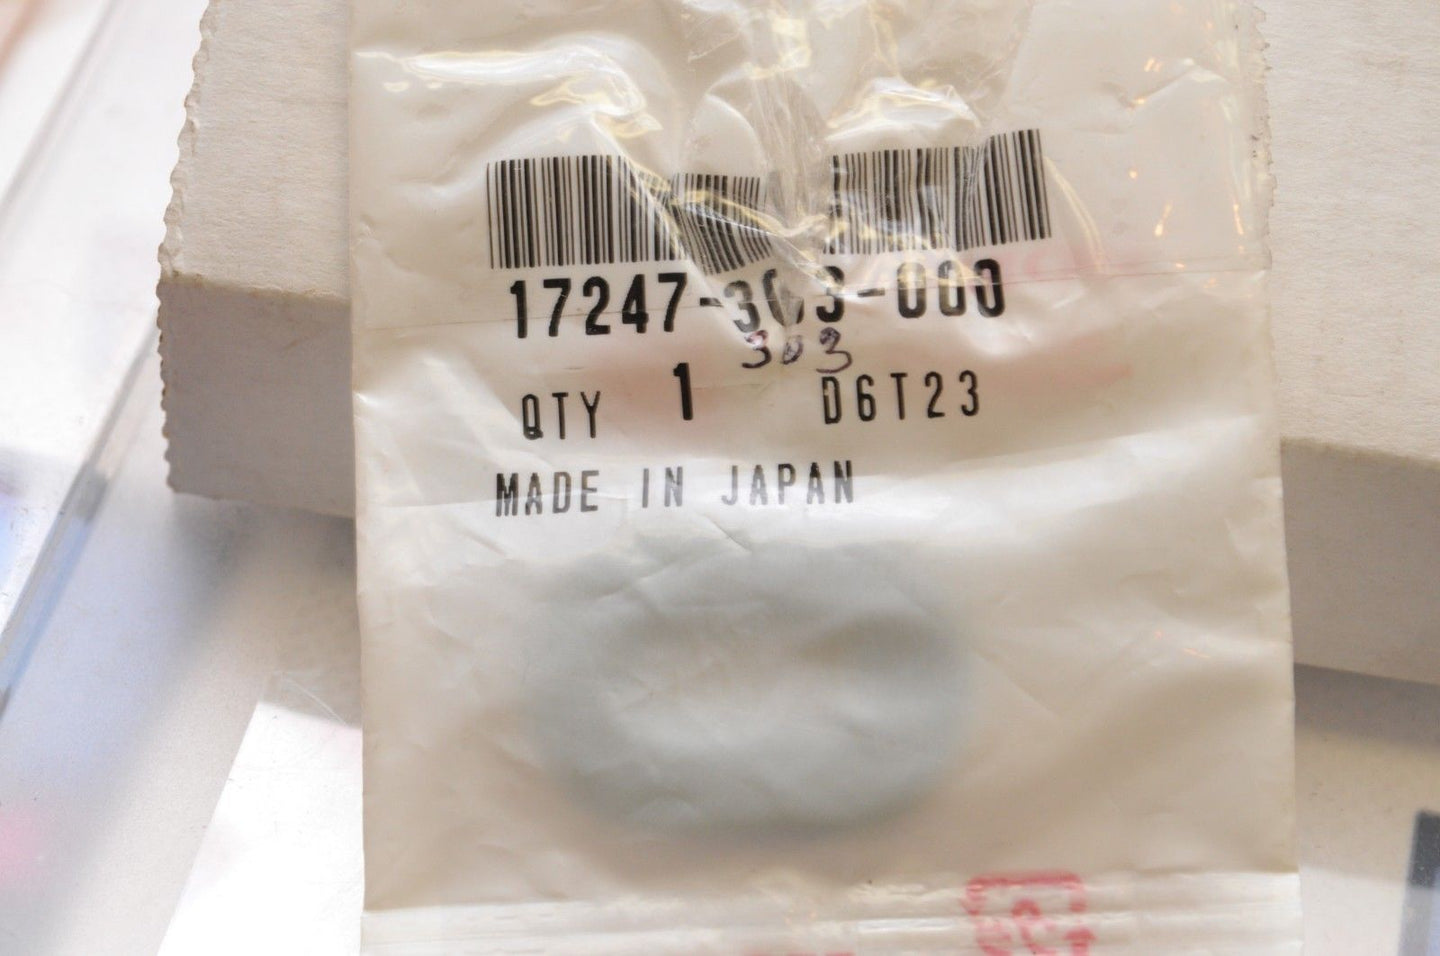 NEW NOS OEM HONDA 17247-303-000 GROMMET A, AIR CLEANER HOUSING CB550 CB750 XL++ - Motomike Canada